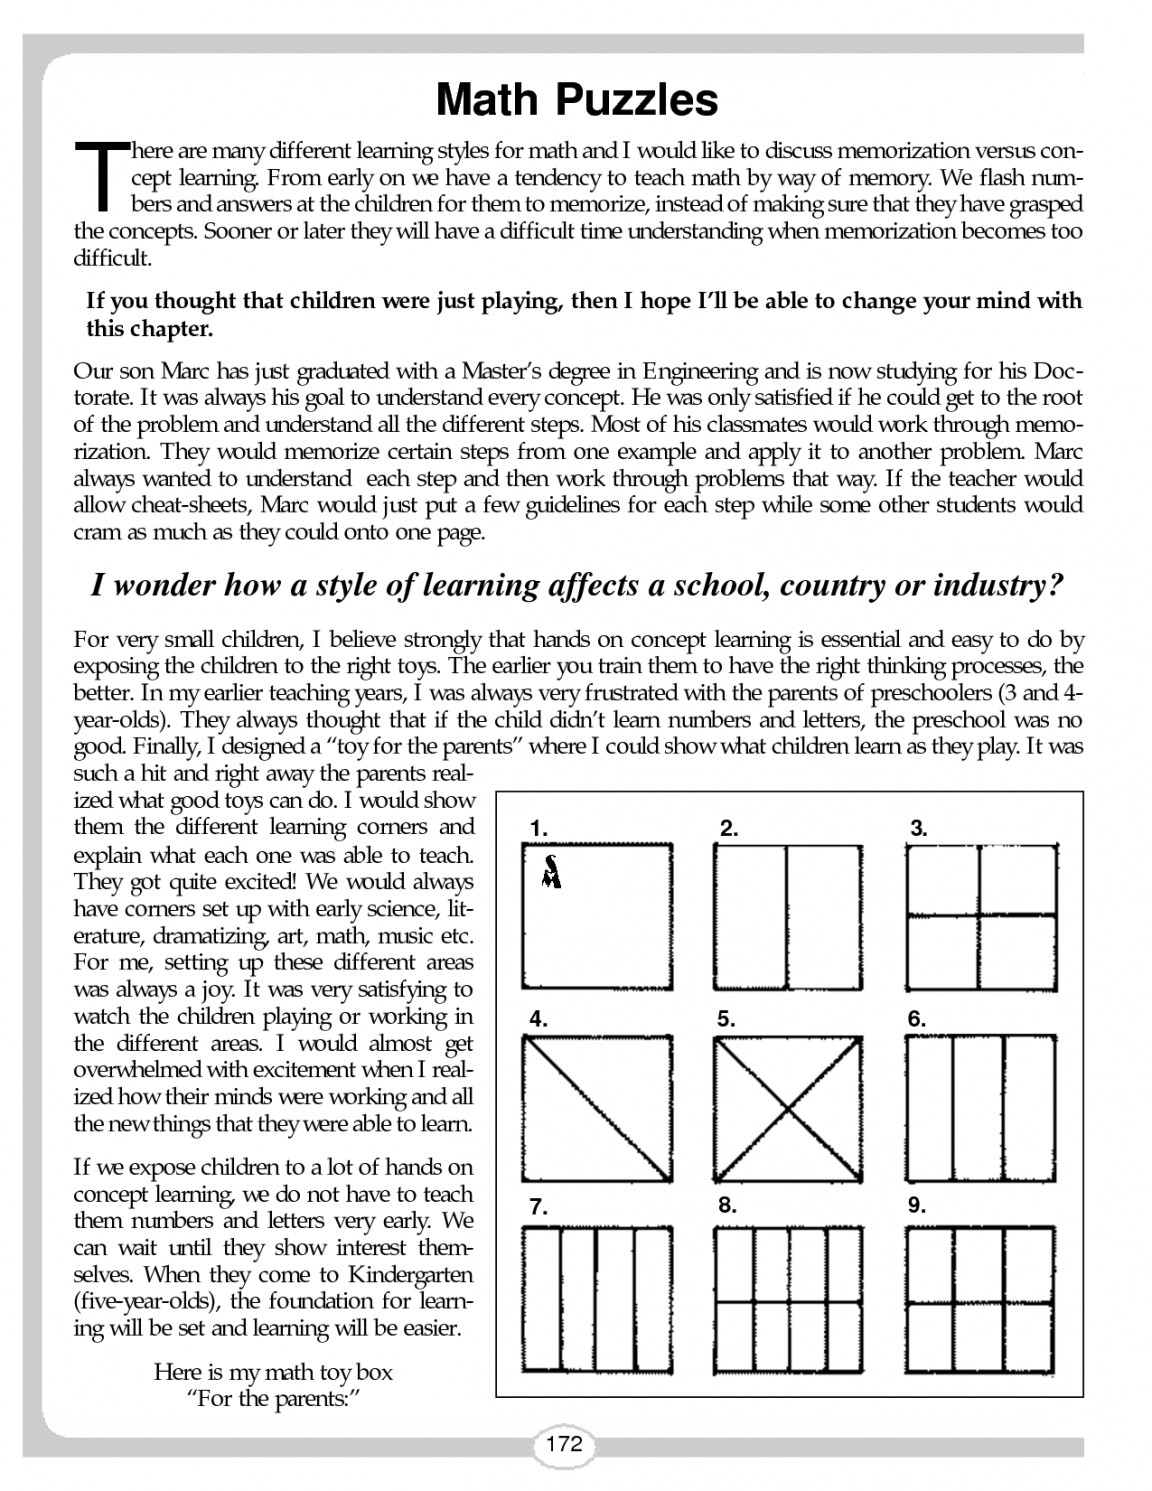 Printable Logic Puzzles For Middle School New Crossword Thanksgiving - Printable Math Crossword Puzzles For High School